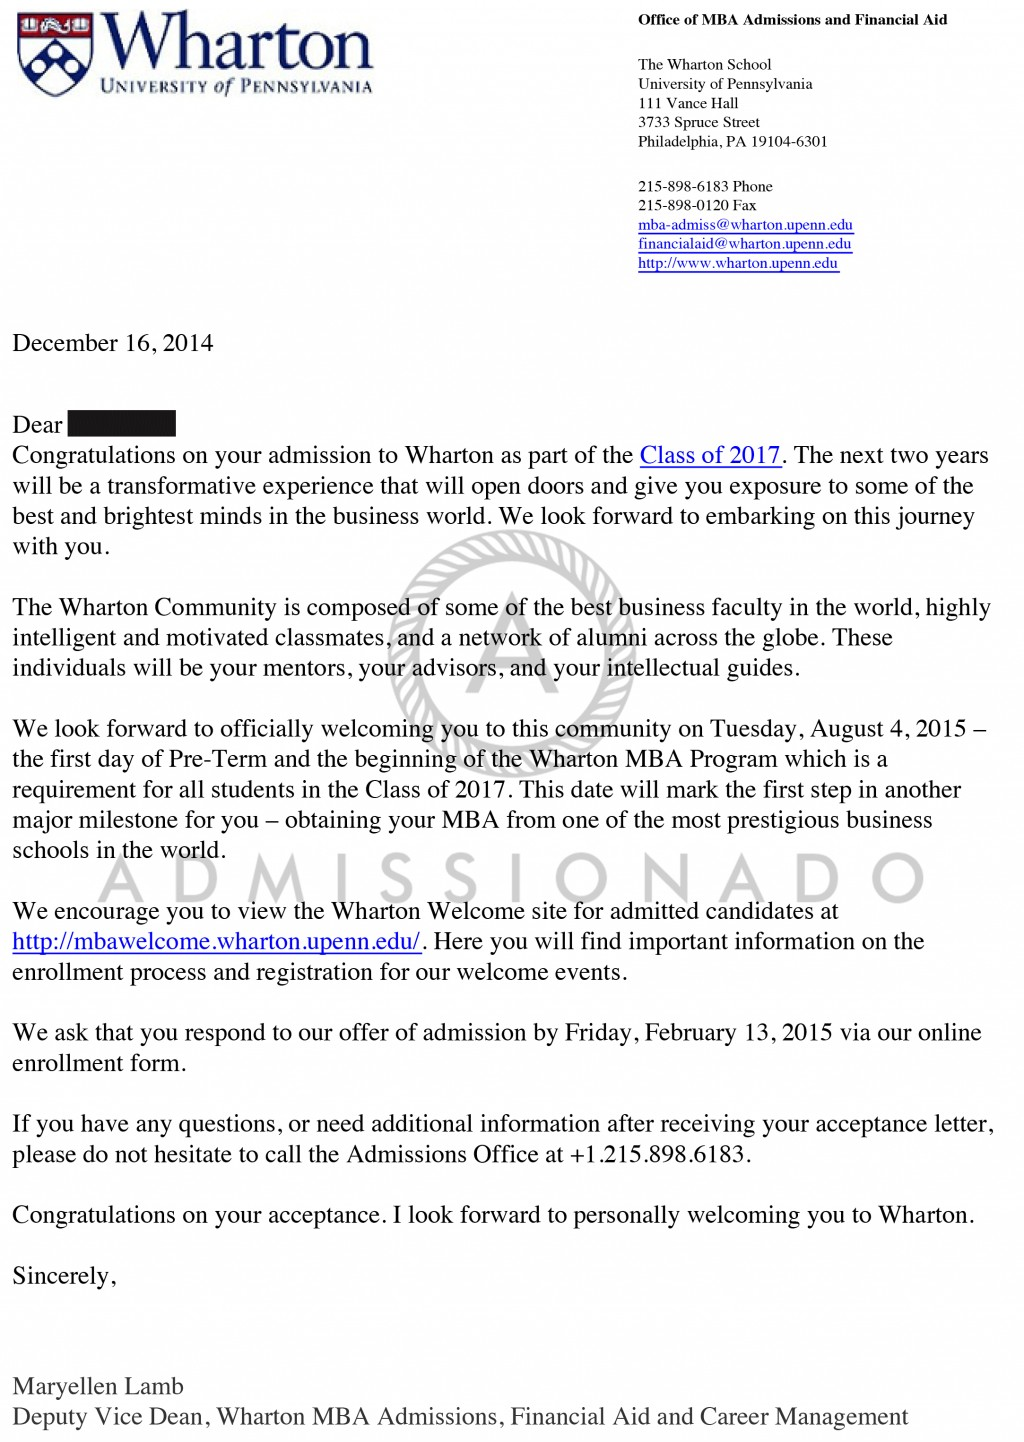 022 Essay Example Stanford Essays Accepted Application Custom Paper Help Pin Acceptance Letter On Pint College That Shocking 2019 Worked Mba Large